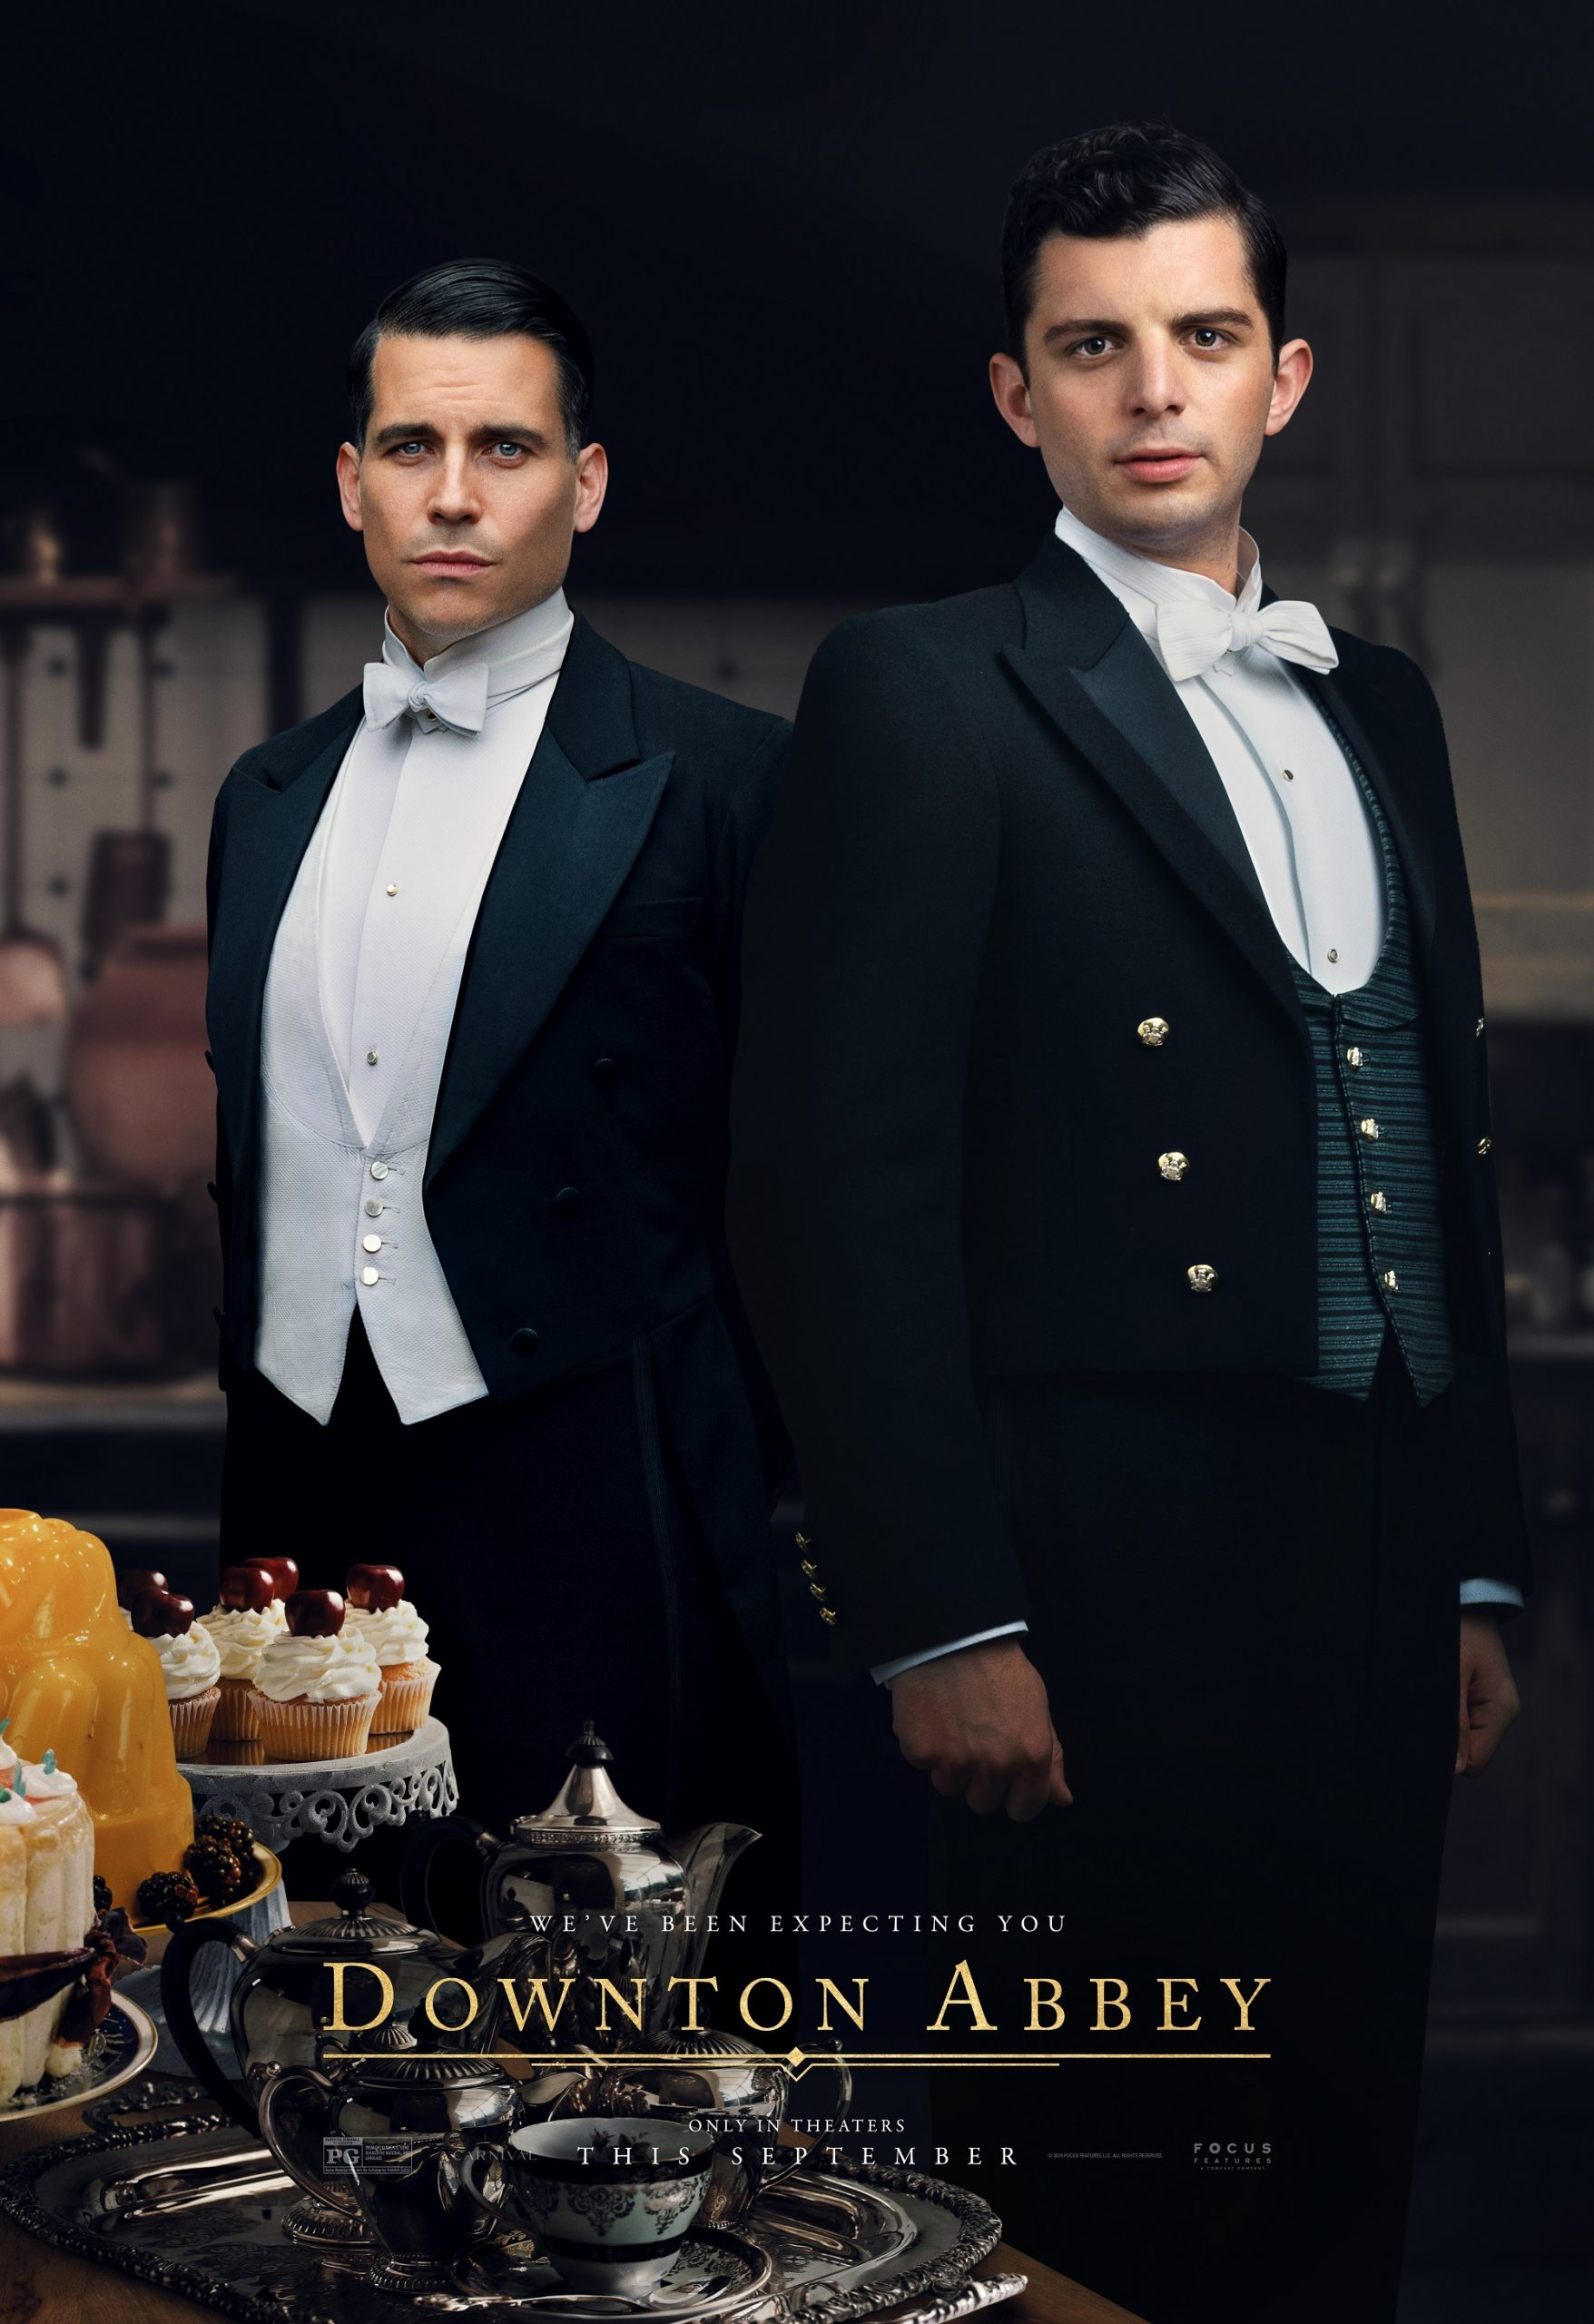 Andrew Parker and Thomas Barrow Downton Abbey The Movie Character Posters